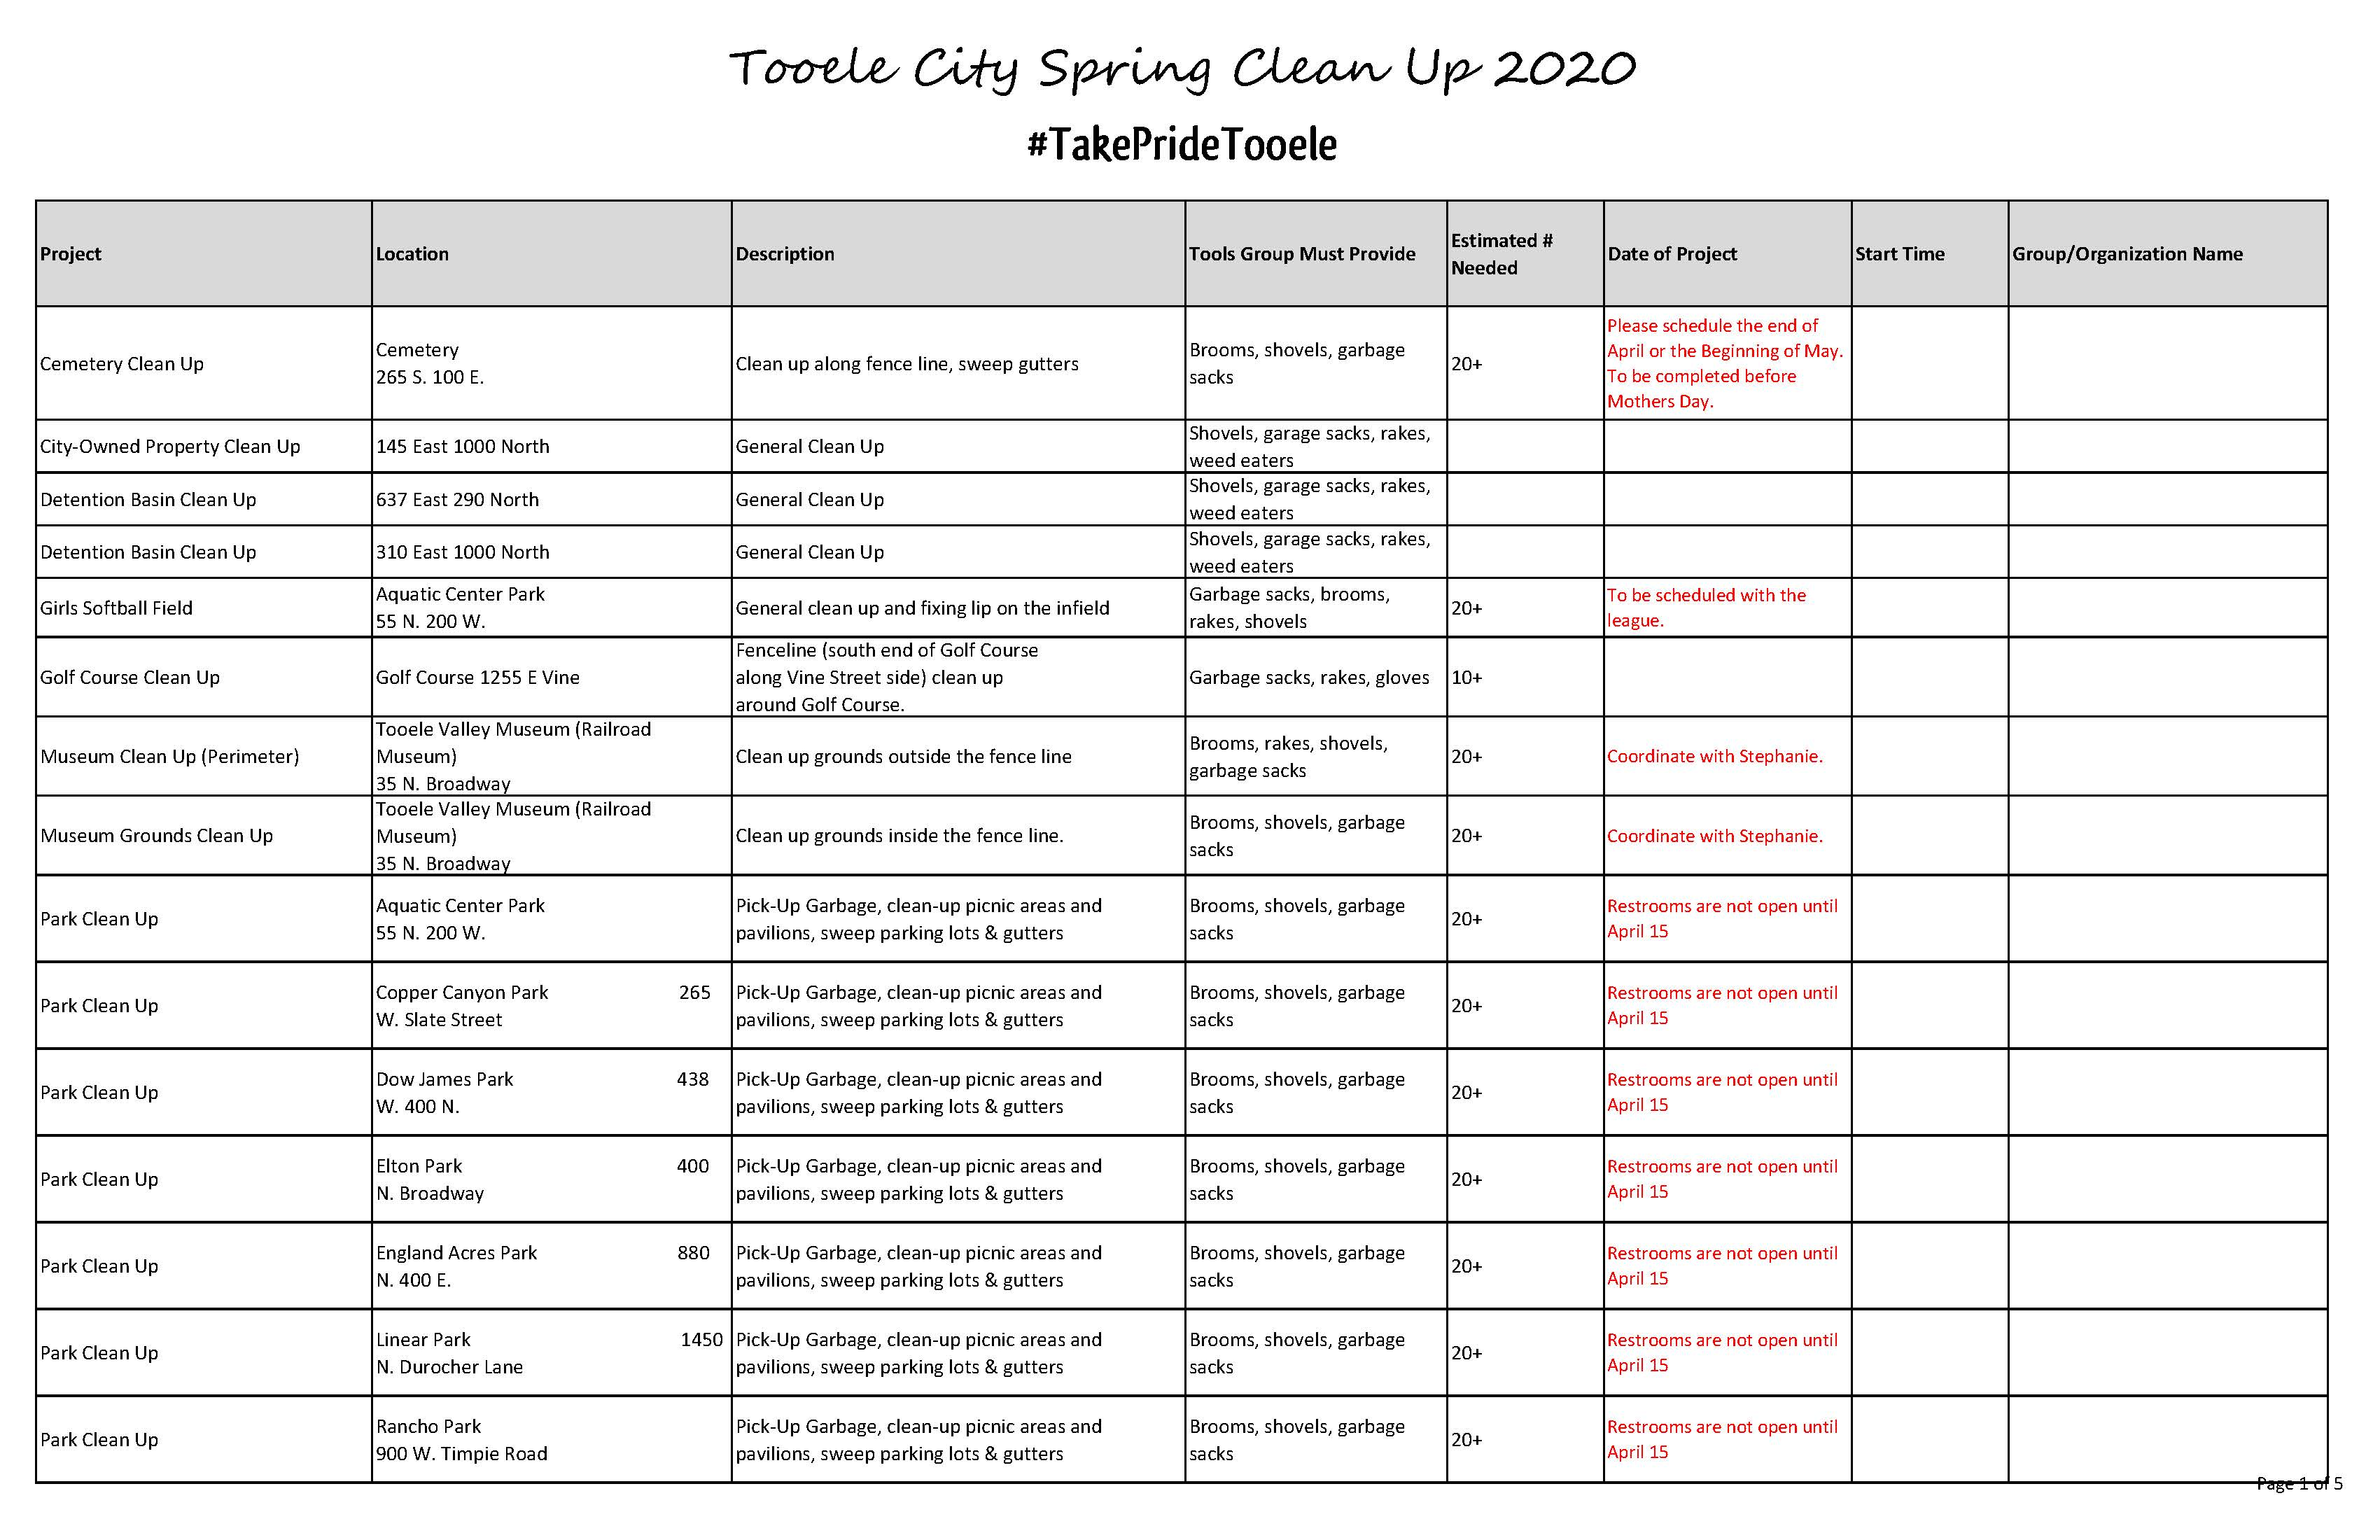 List of Projects for Spring Clean Up 2020